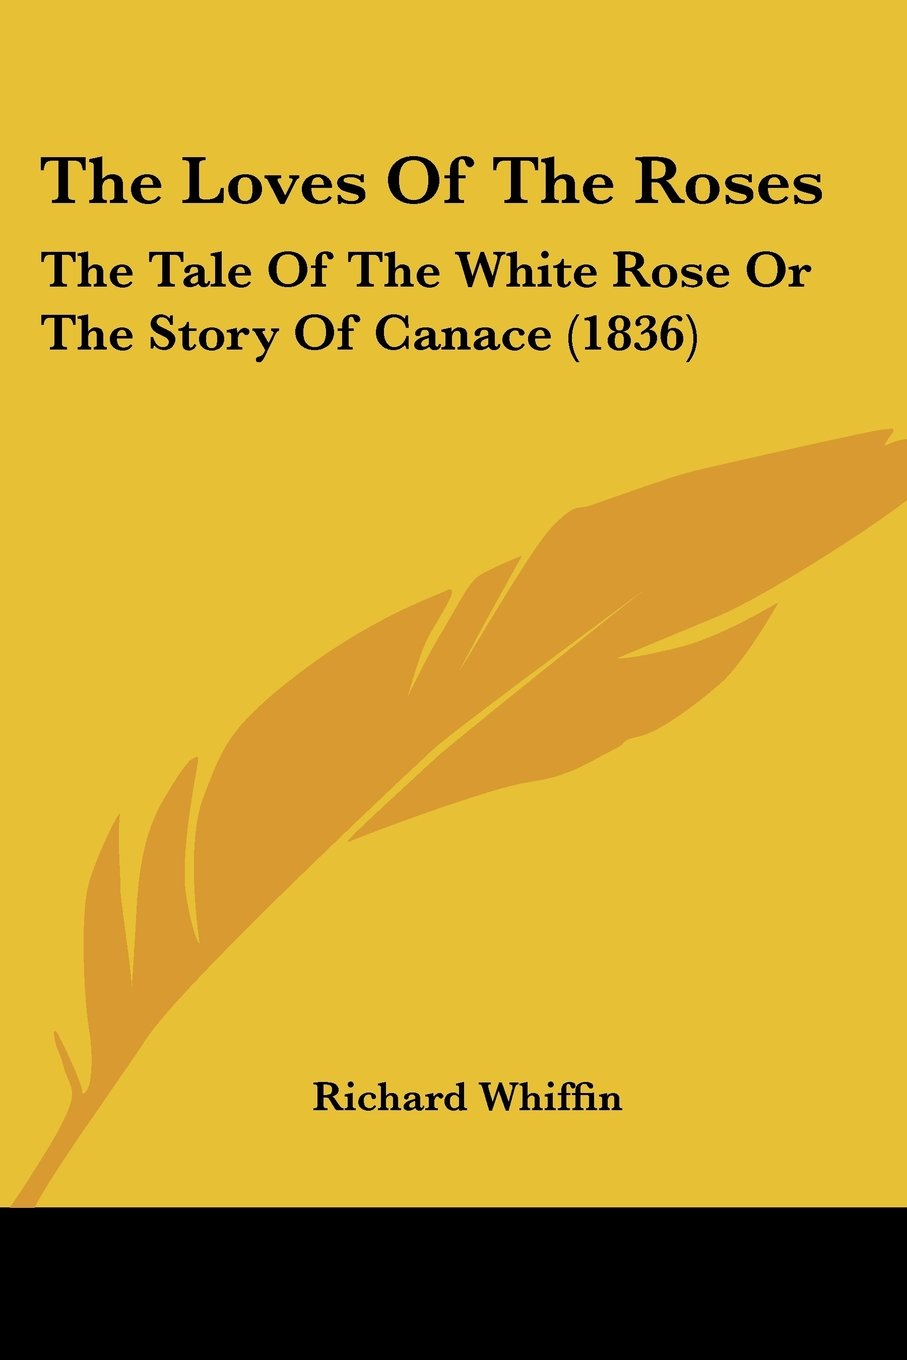 The Loves Of The Roses: The Tale Of The White Rose Or The Story Of Canace (1836) ebook